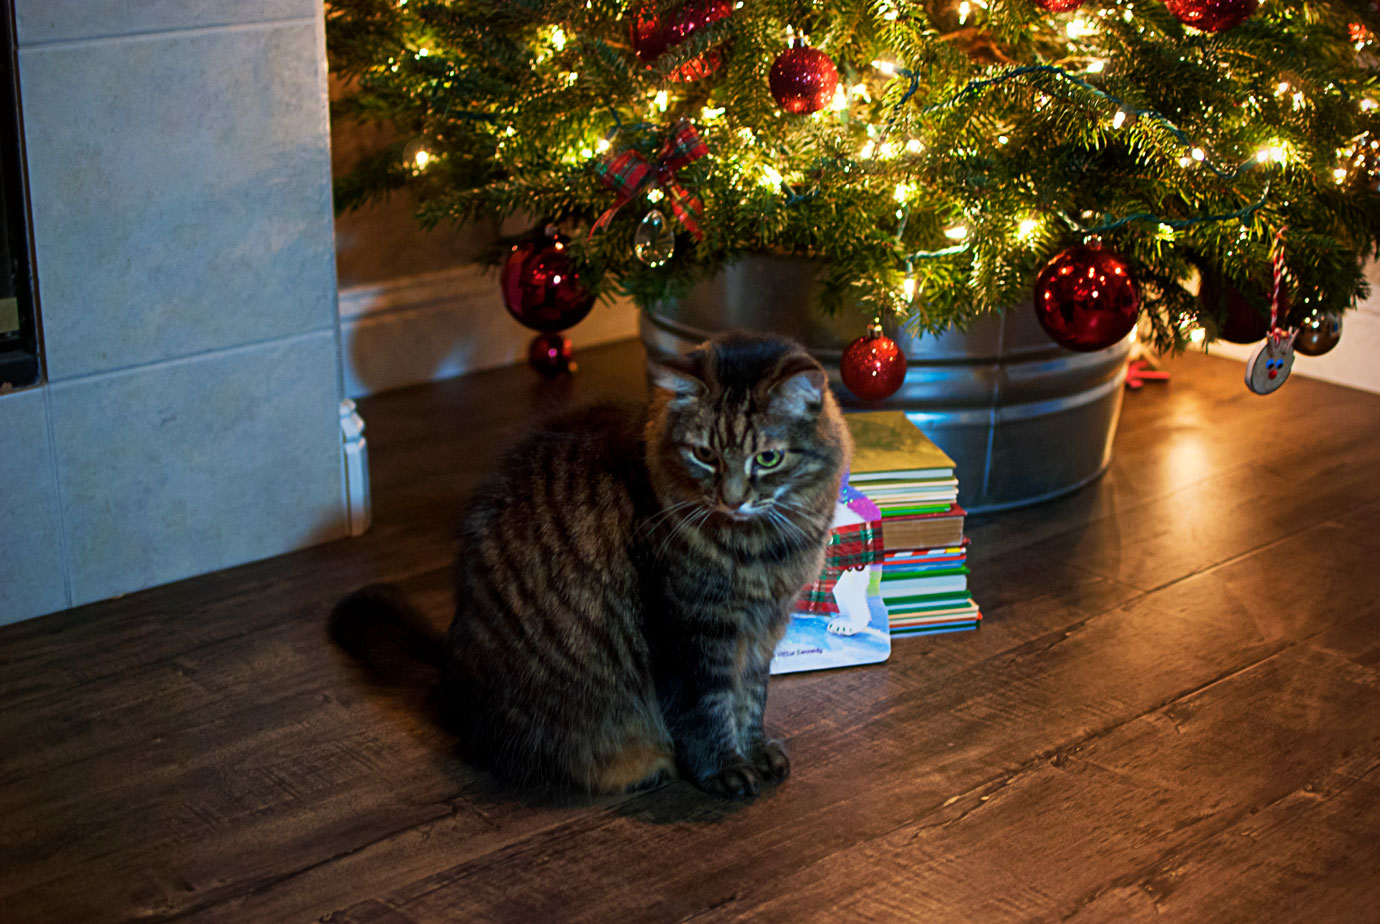 Samantha Cat Blocking The Photo Sitting In Front of The Christmas Tree #OneChristmasBear #ChristmasBook #ChristmasTraditions